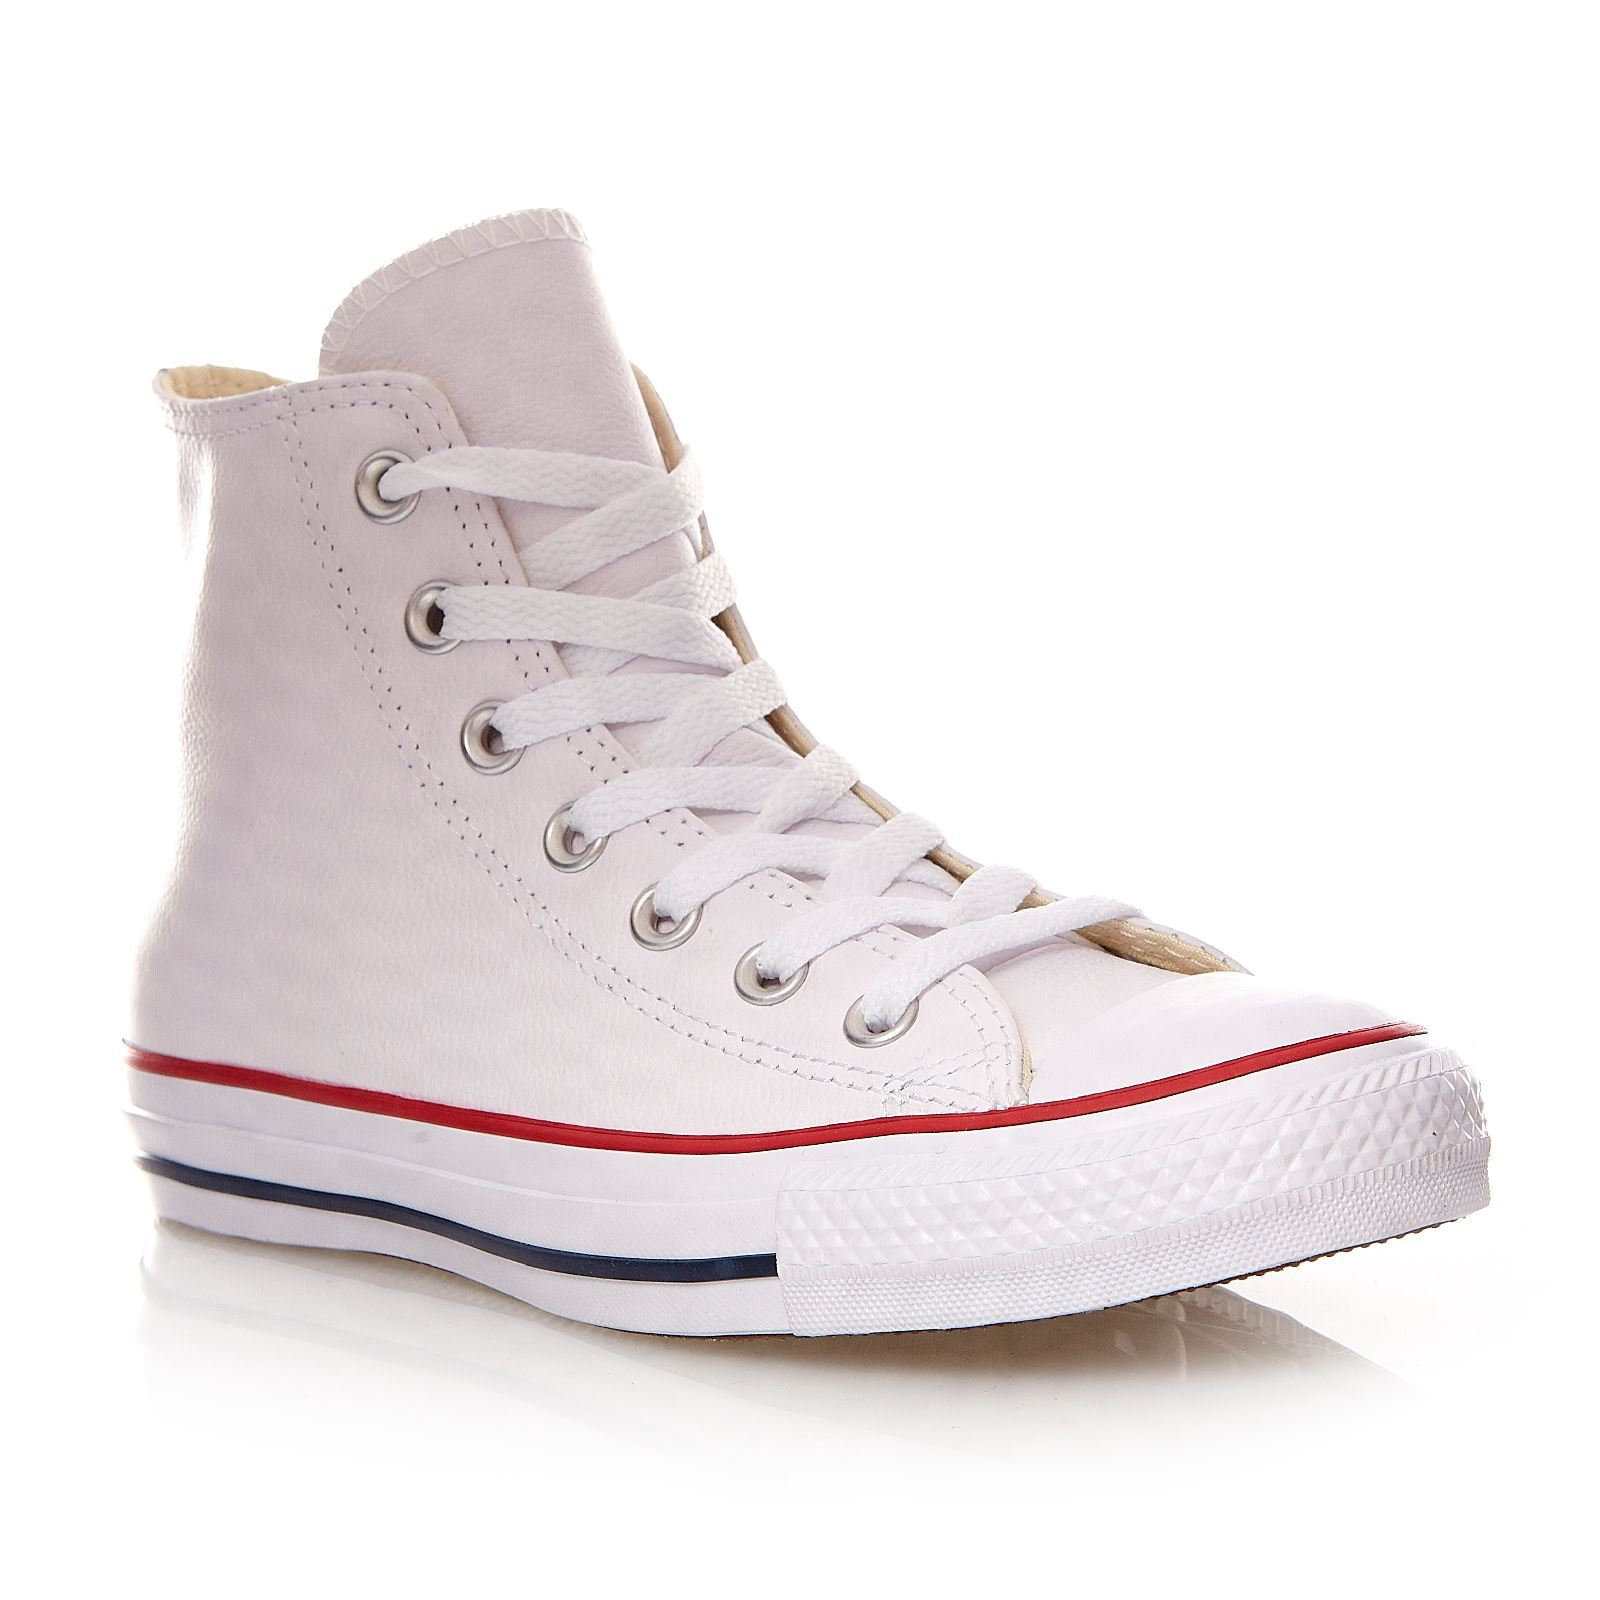 converse chuck taylor all star hi high sneakers aus leder wei brandalley. Black Bedroom Furniture Sets. Home Design Ideas